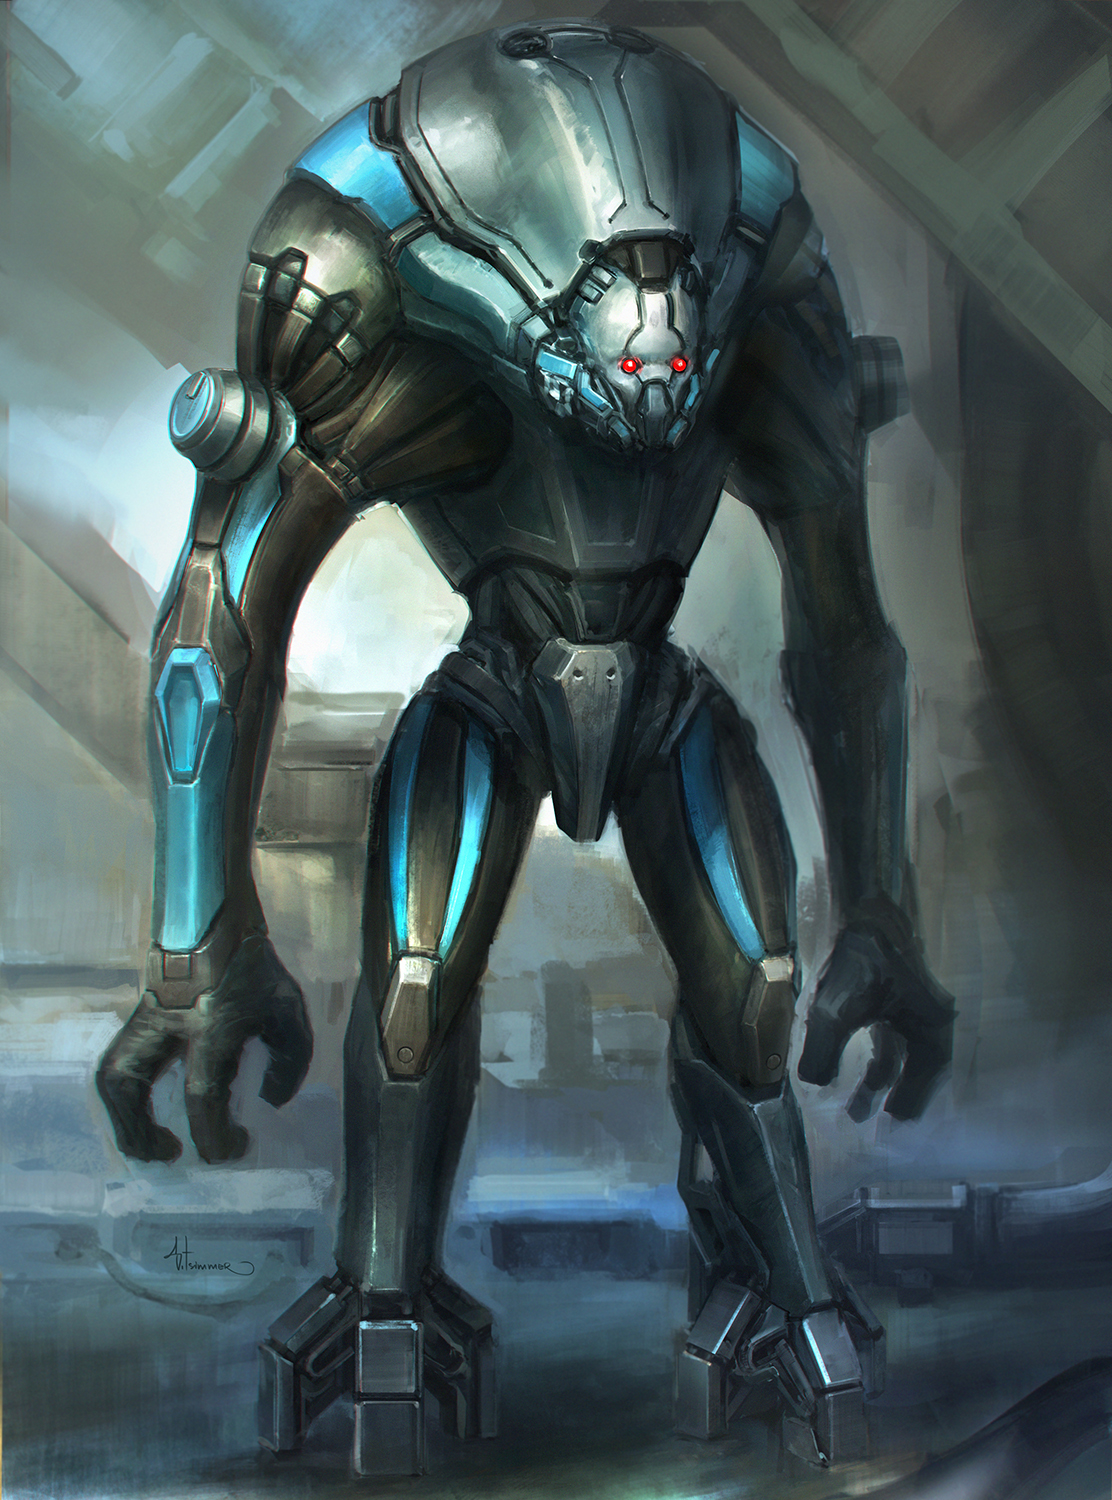 Security bot1 selenium by TsimmerS